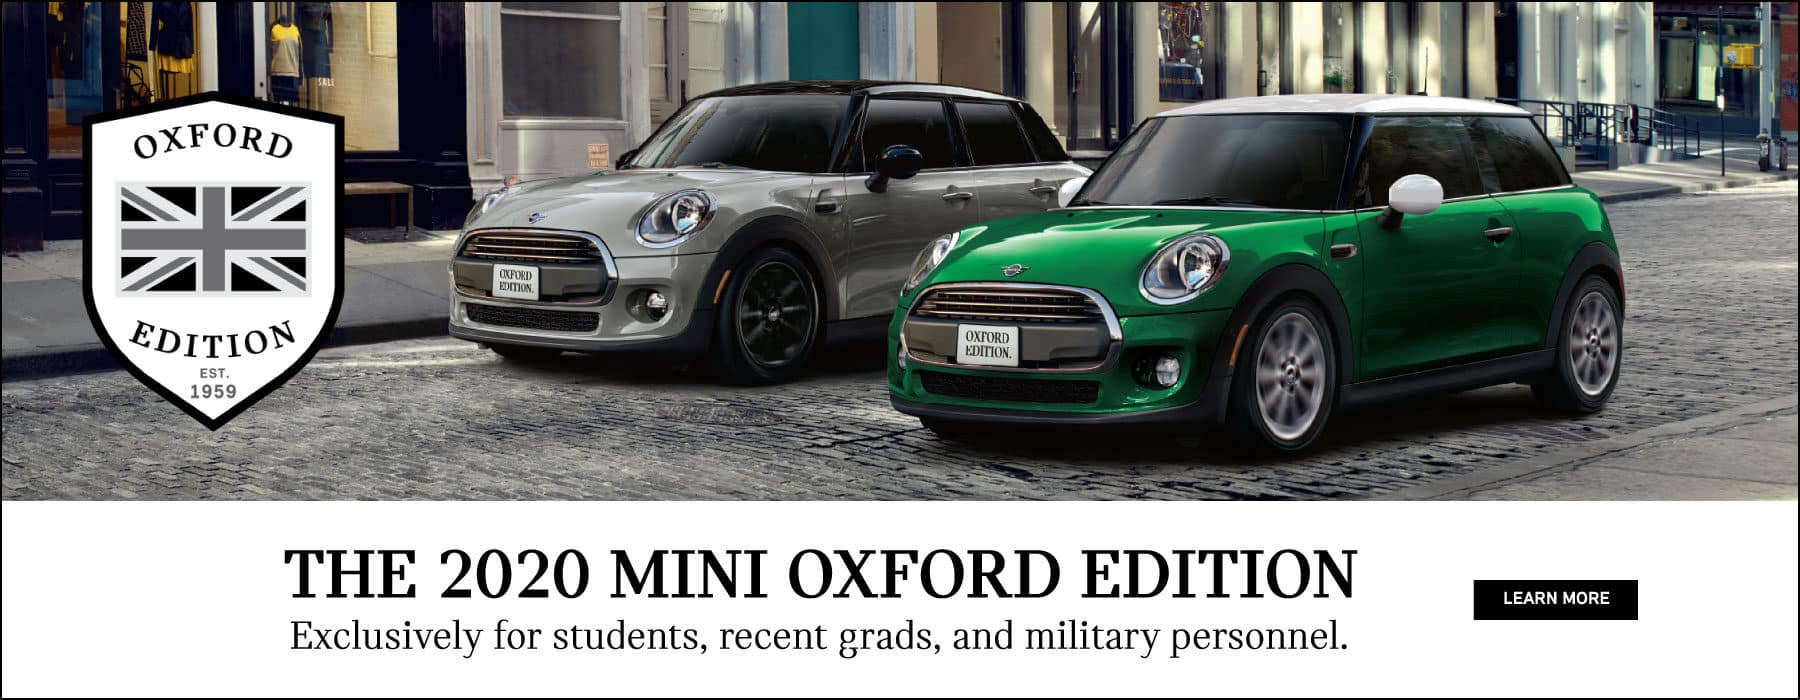 The 2020 MINI Oxford Edition.  Exclusively for students, recent grads, and military personnel.  Learn more.